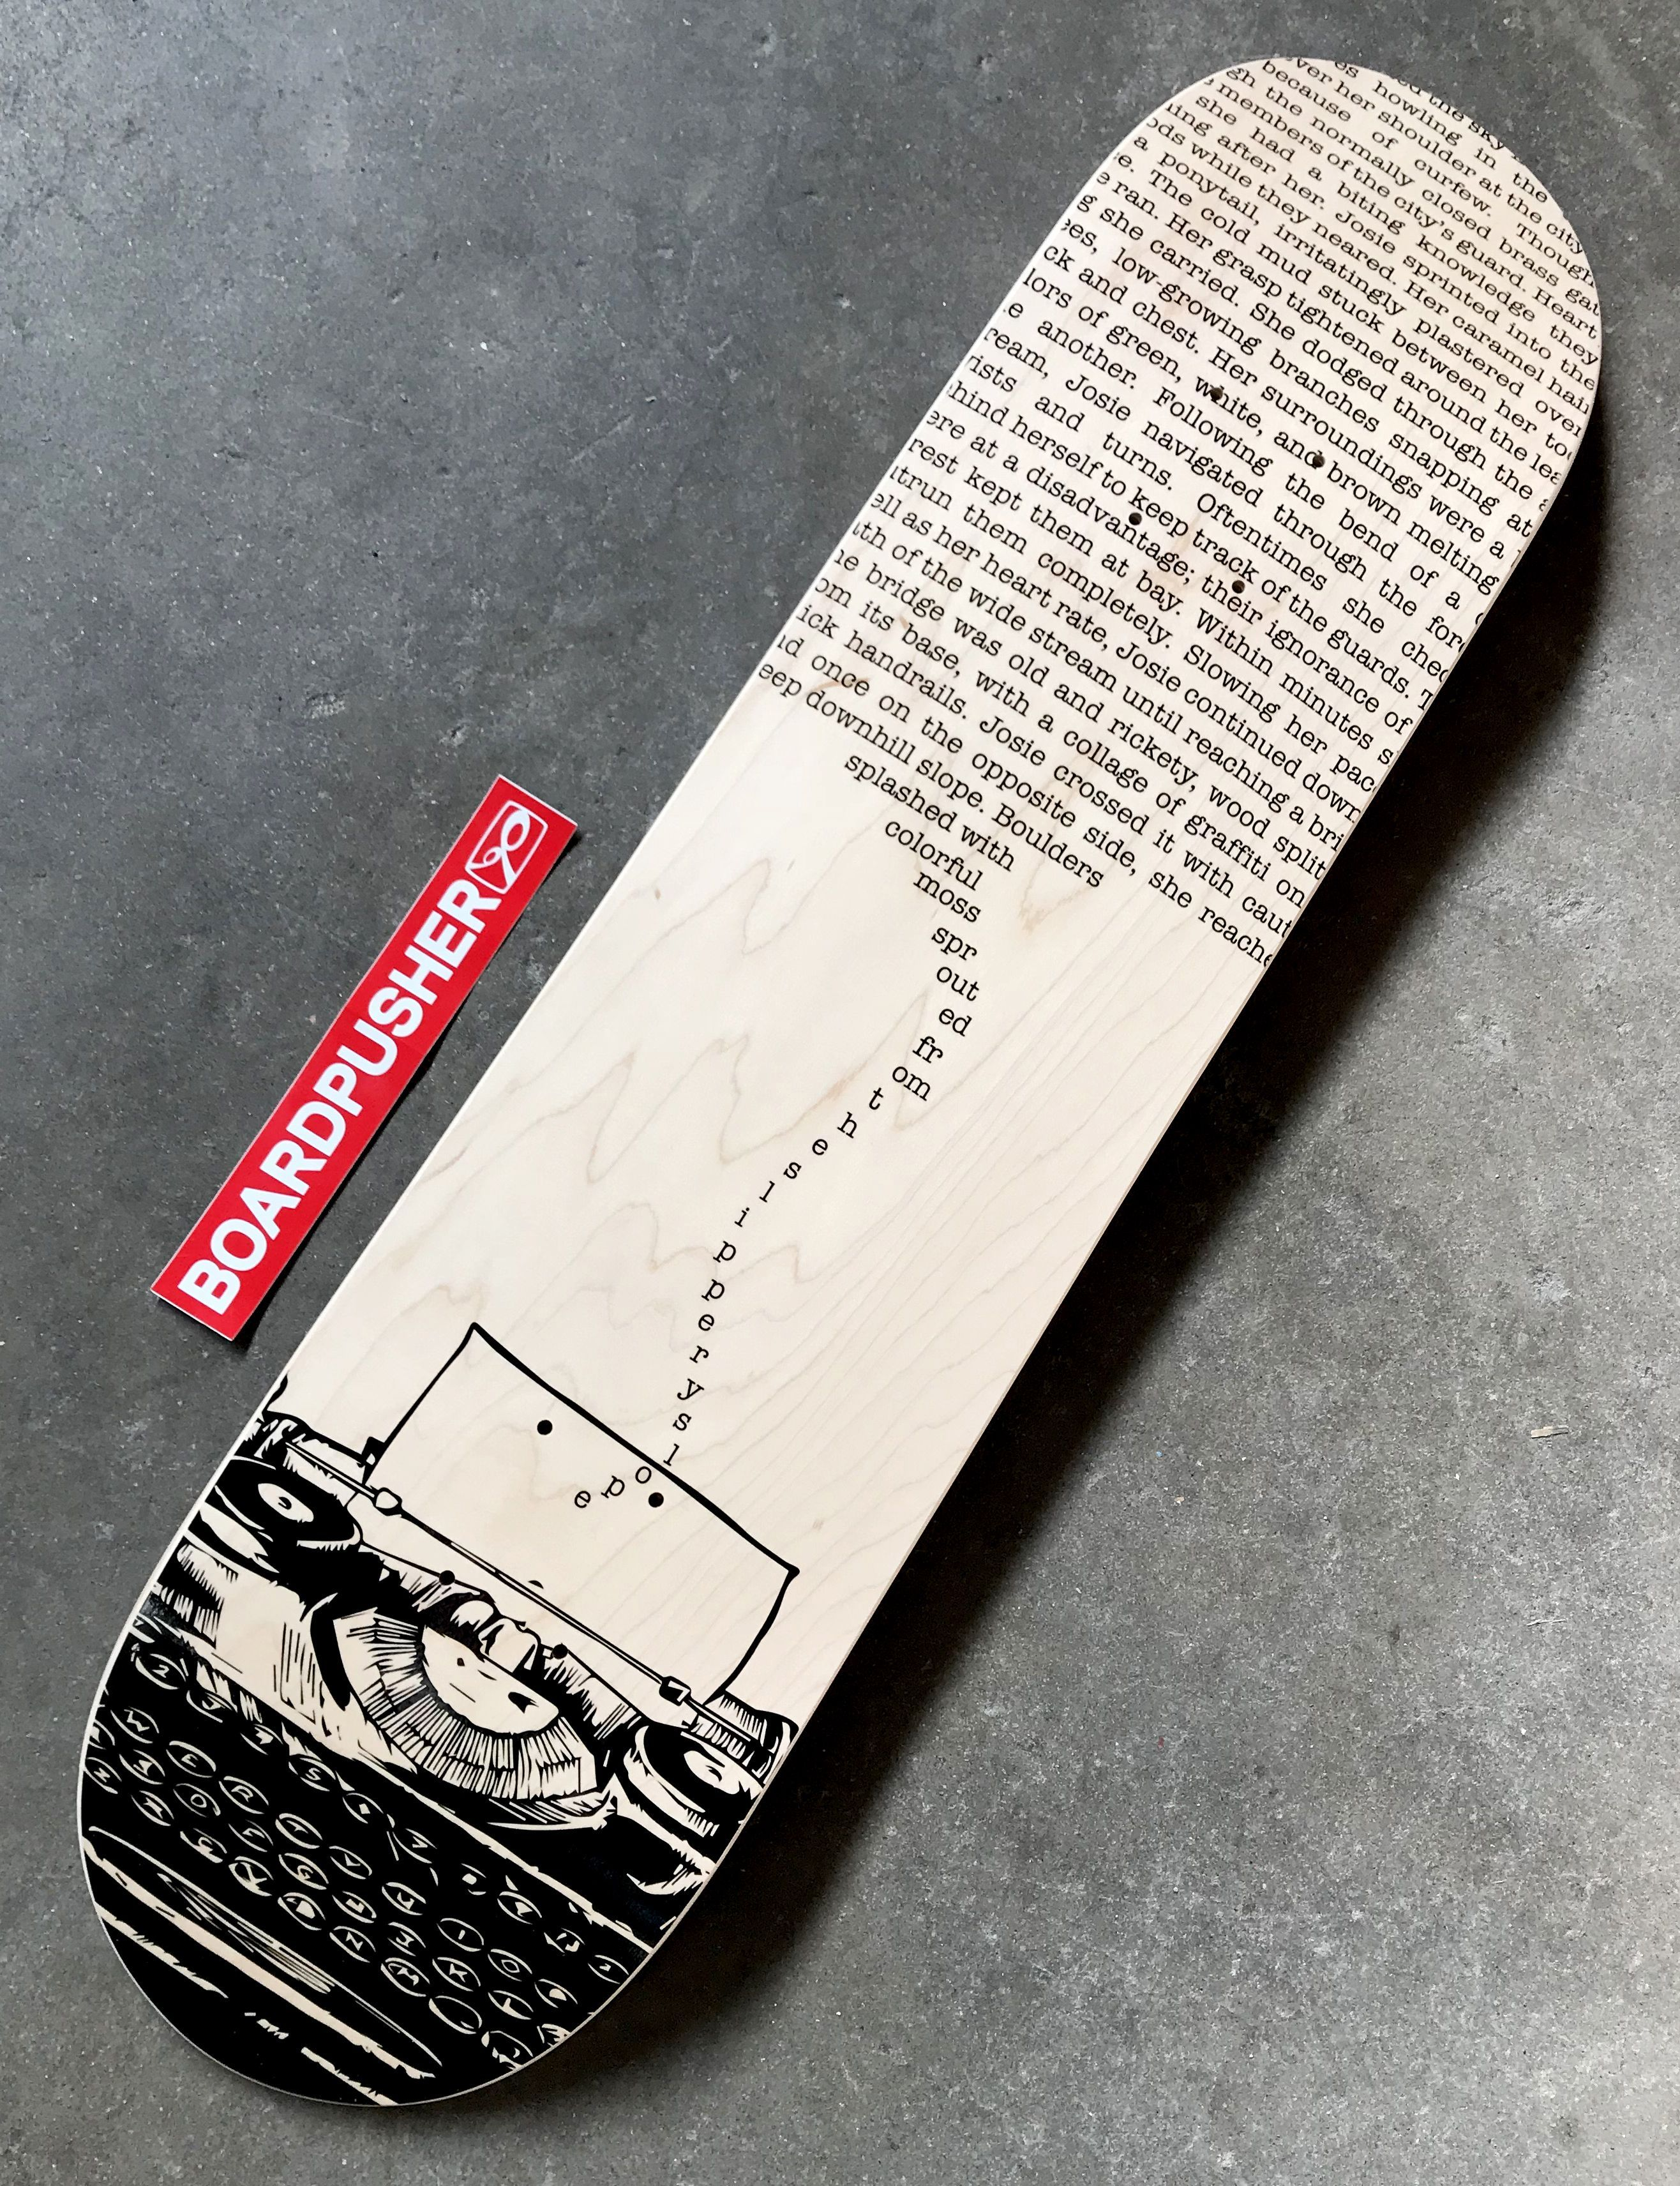 Typewriter Custom Skateboard Graphic Created By Audrey Schied Today S Featured Deck Design Your Own Skateboard At Boa Planches De Skateboard Skateboard Skate